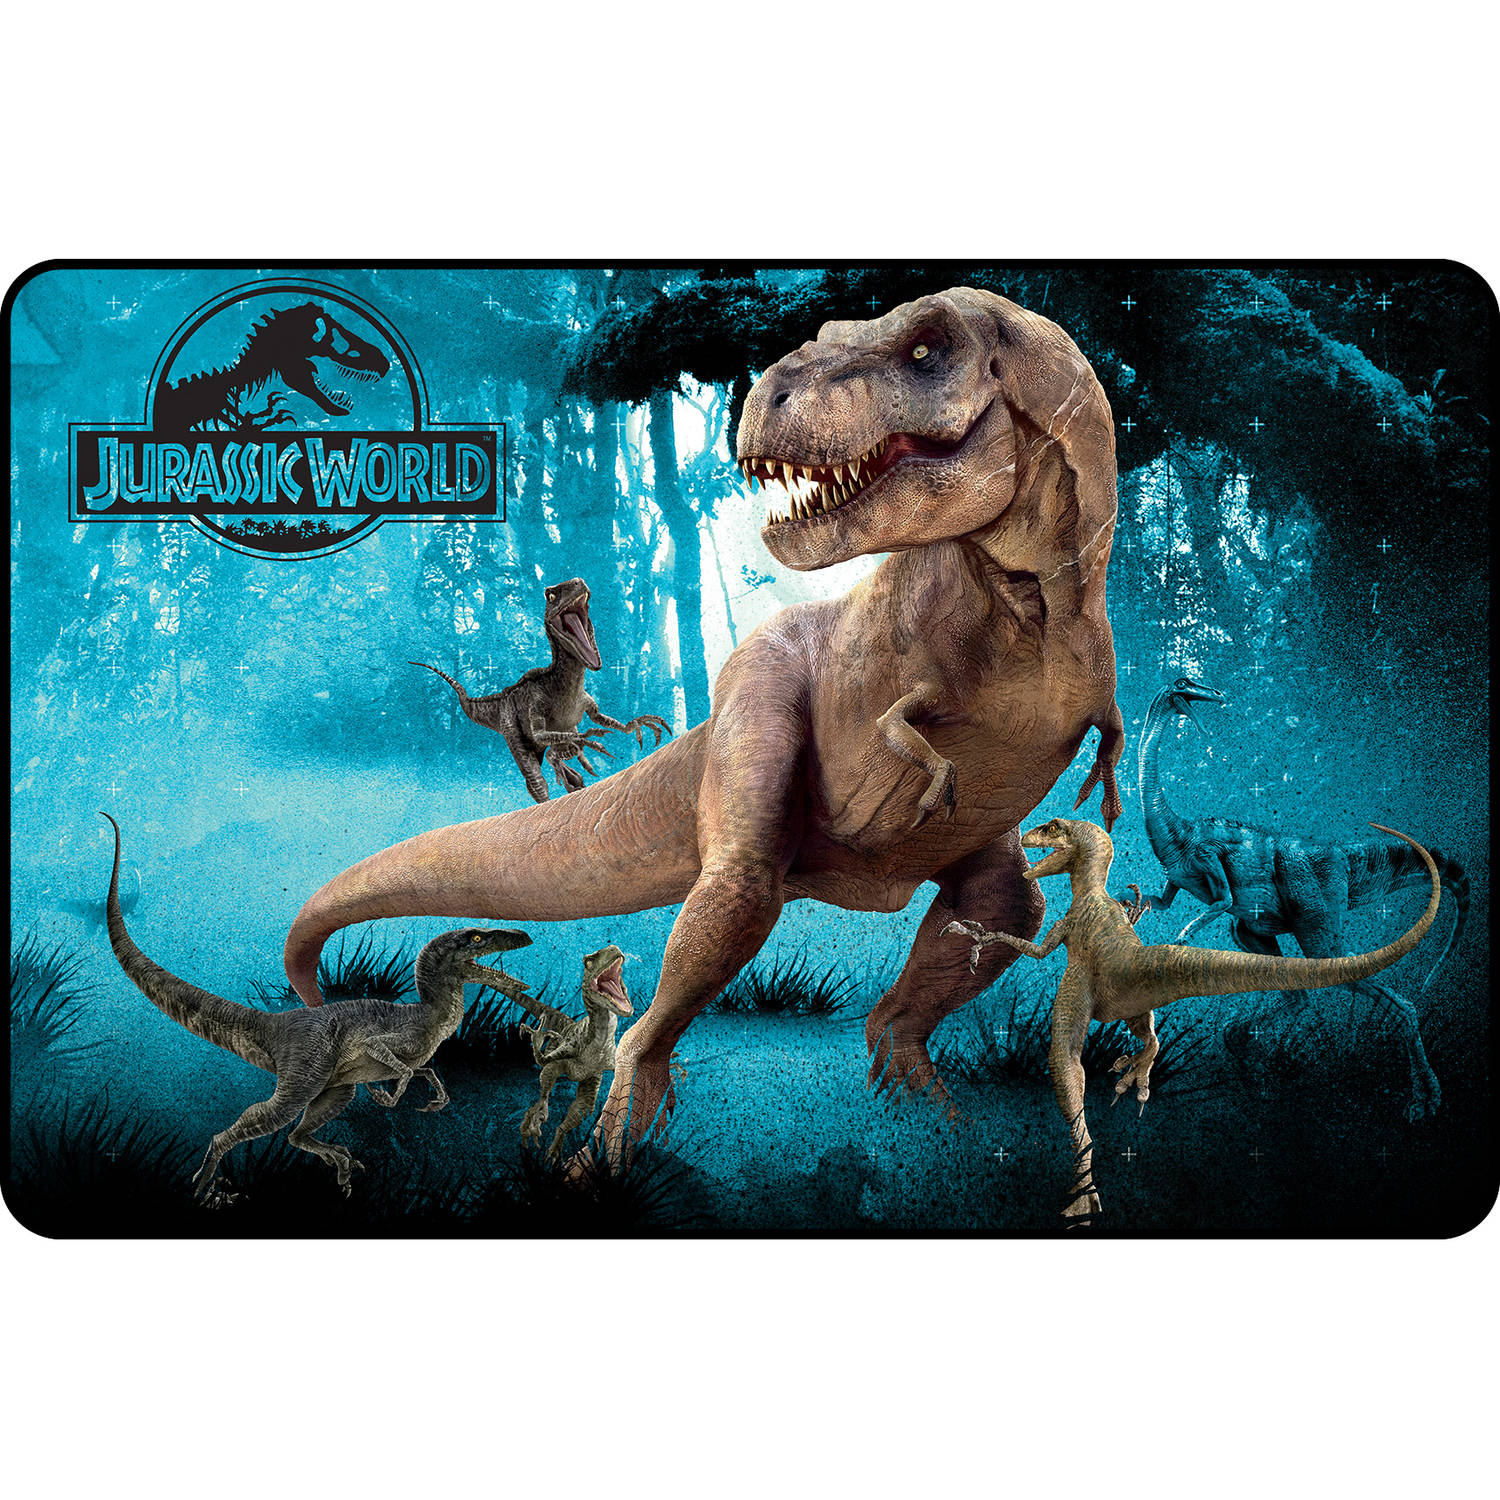 Jurassic World Dinosaur Attack 30 Quot X 46 Quot Accent Rug